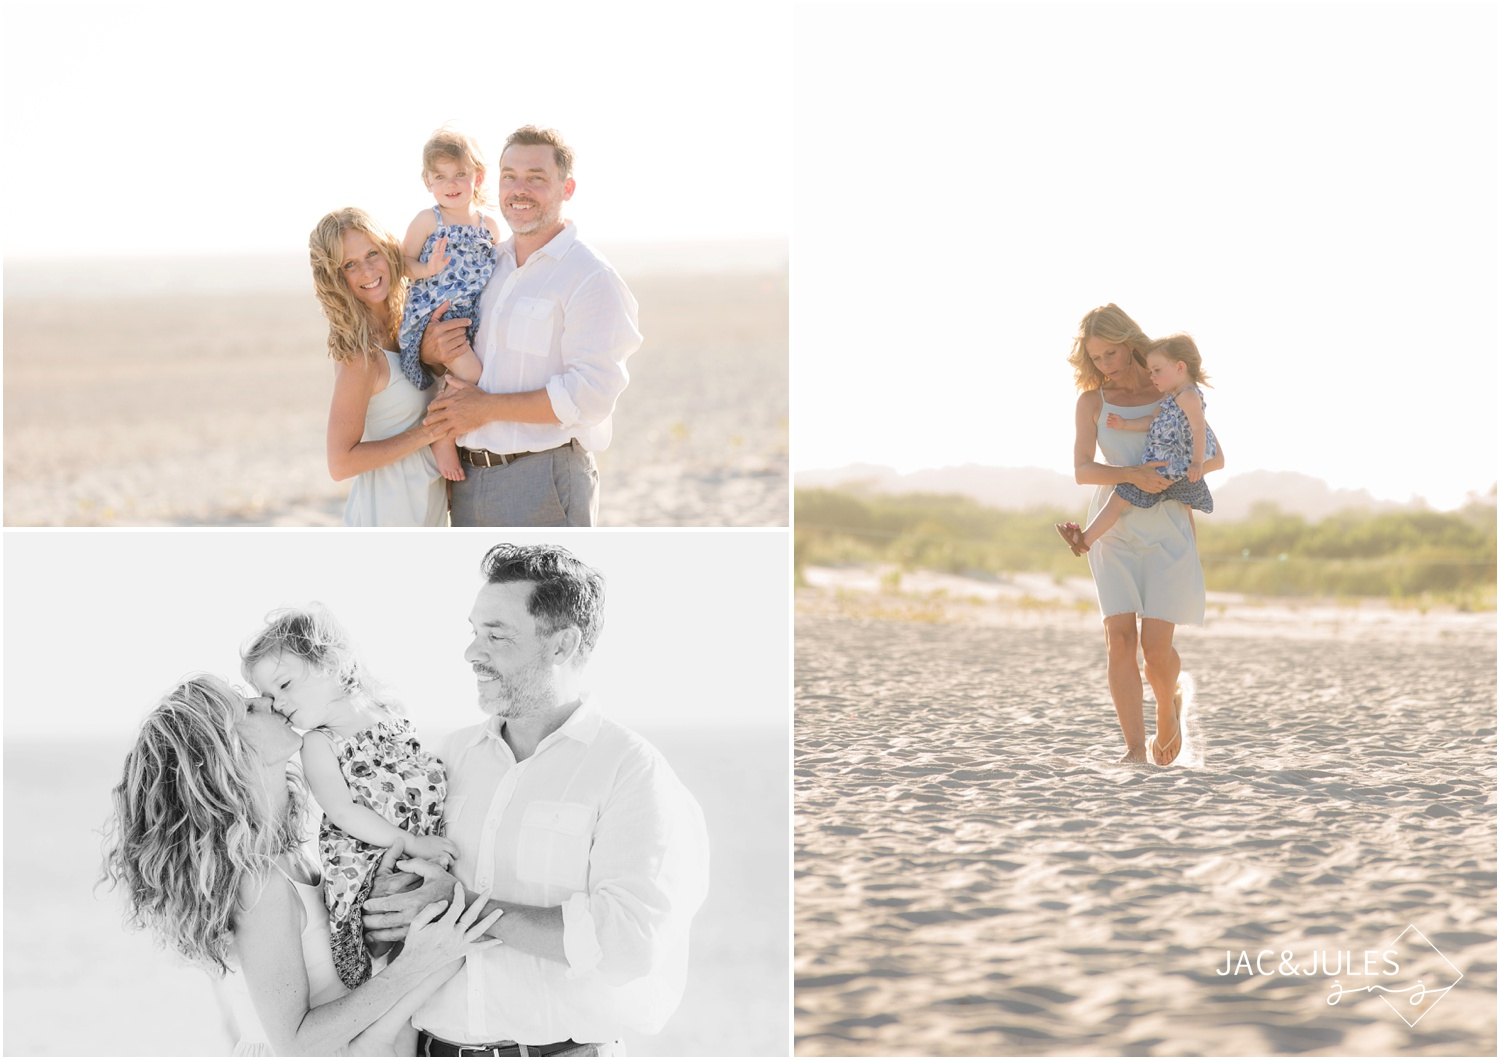 sweet family photos on the beach in Cape May, NJ